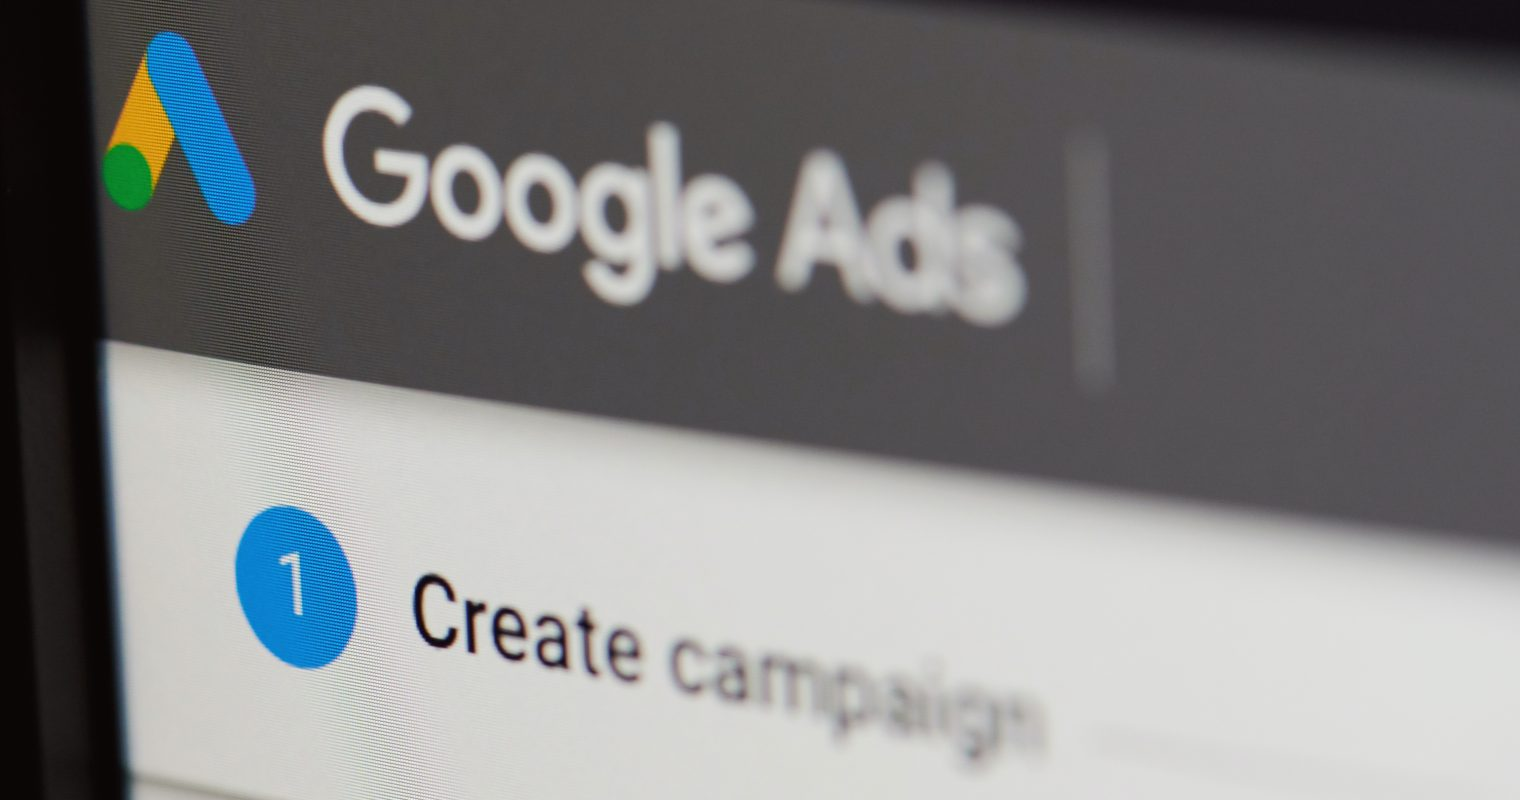 Google Ads Conversion Updates: Global Site Tag to Set First-Party Cookie; GMP to Model Conversions in Europe